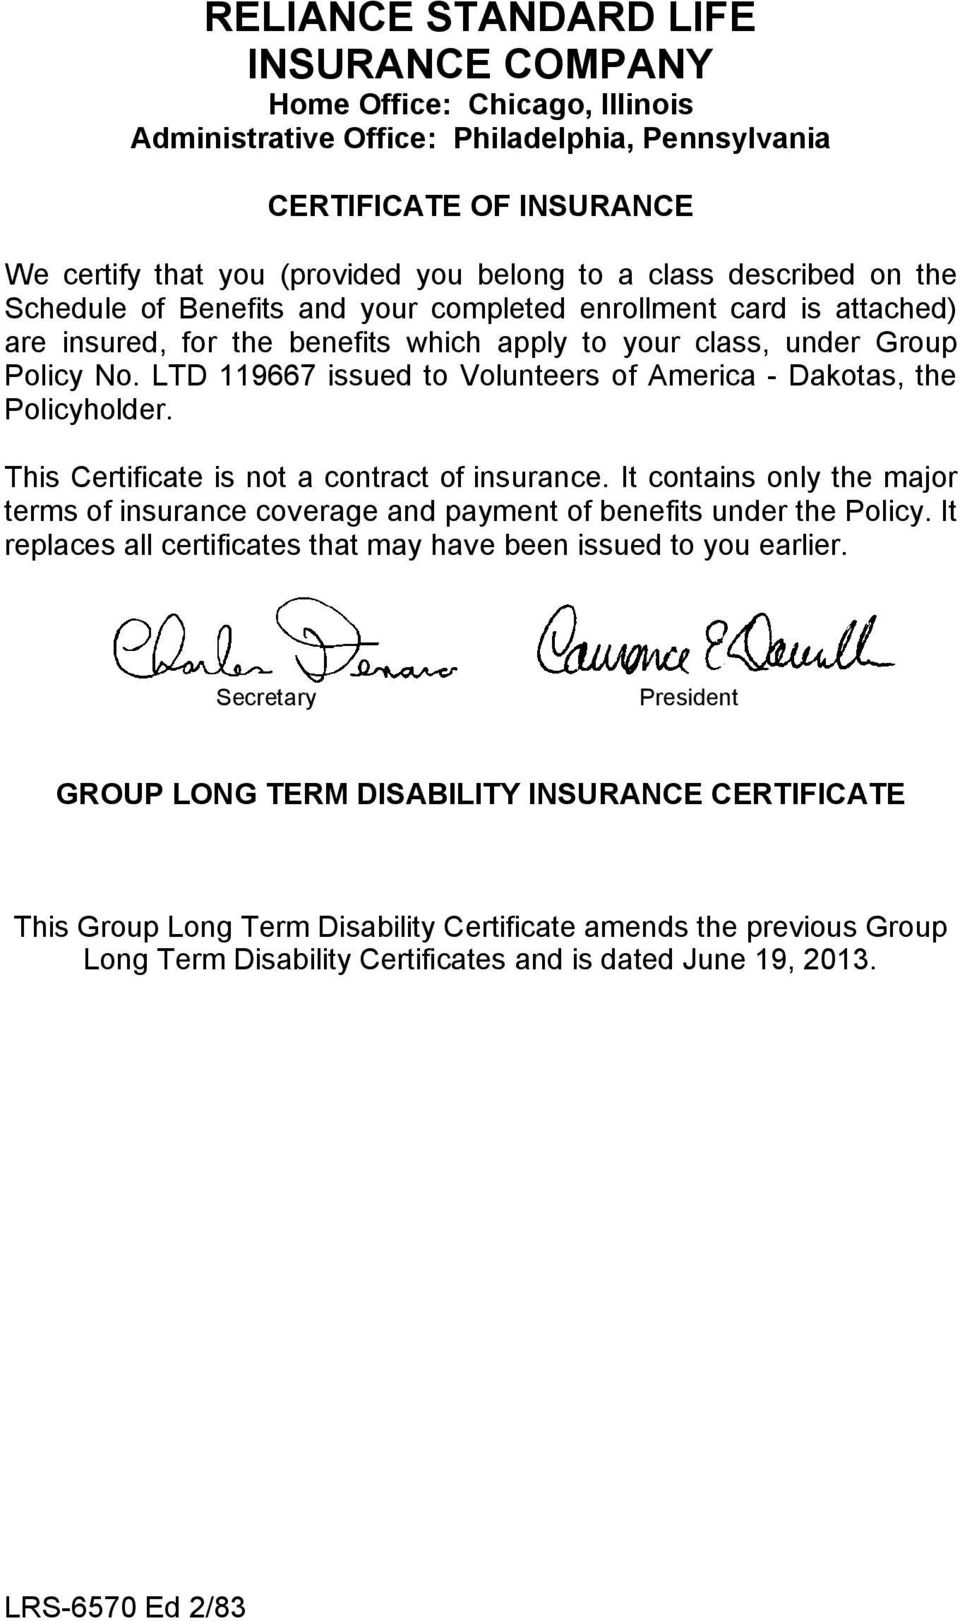 LTD 119667 issued to Volunteers of America - Dakotas, the Policyholder. This Certificate is not a contract of insurance.